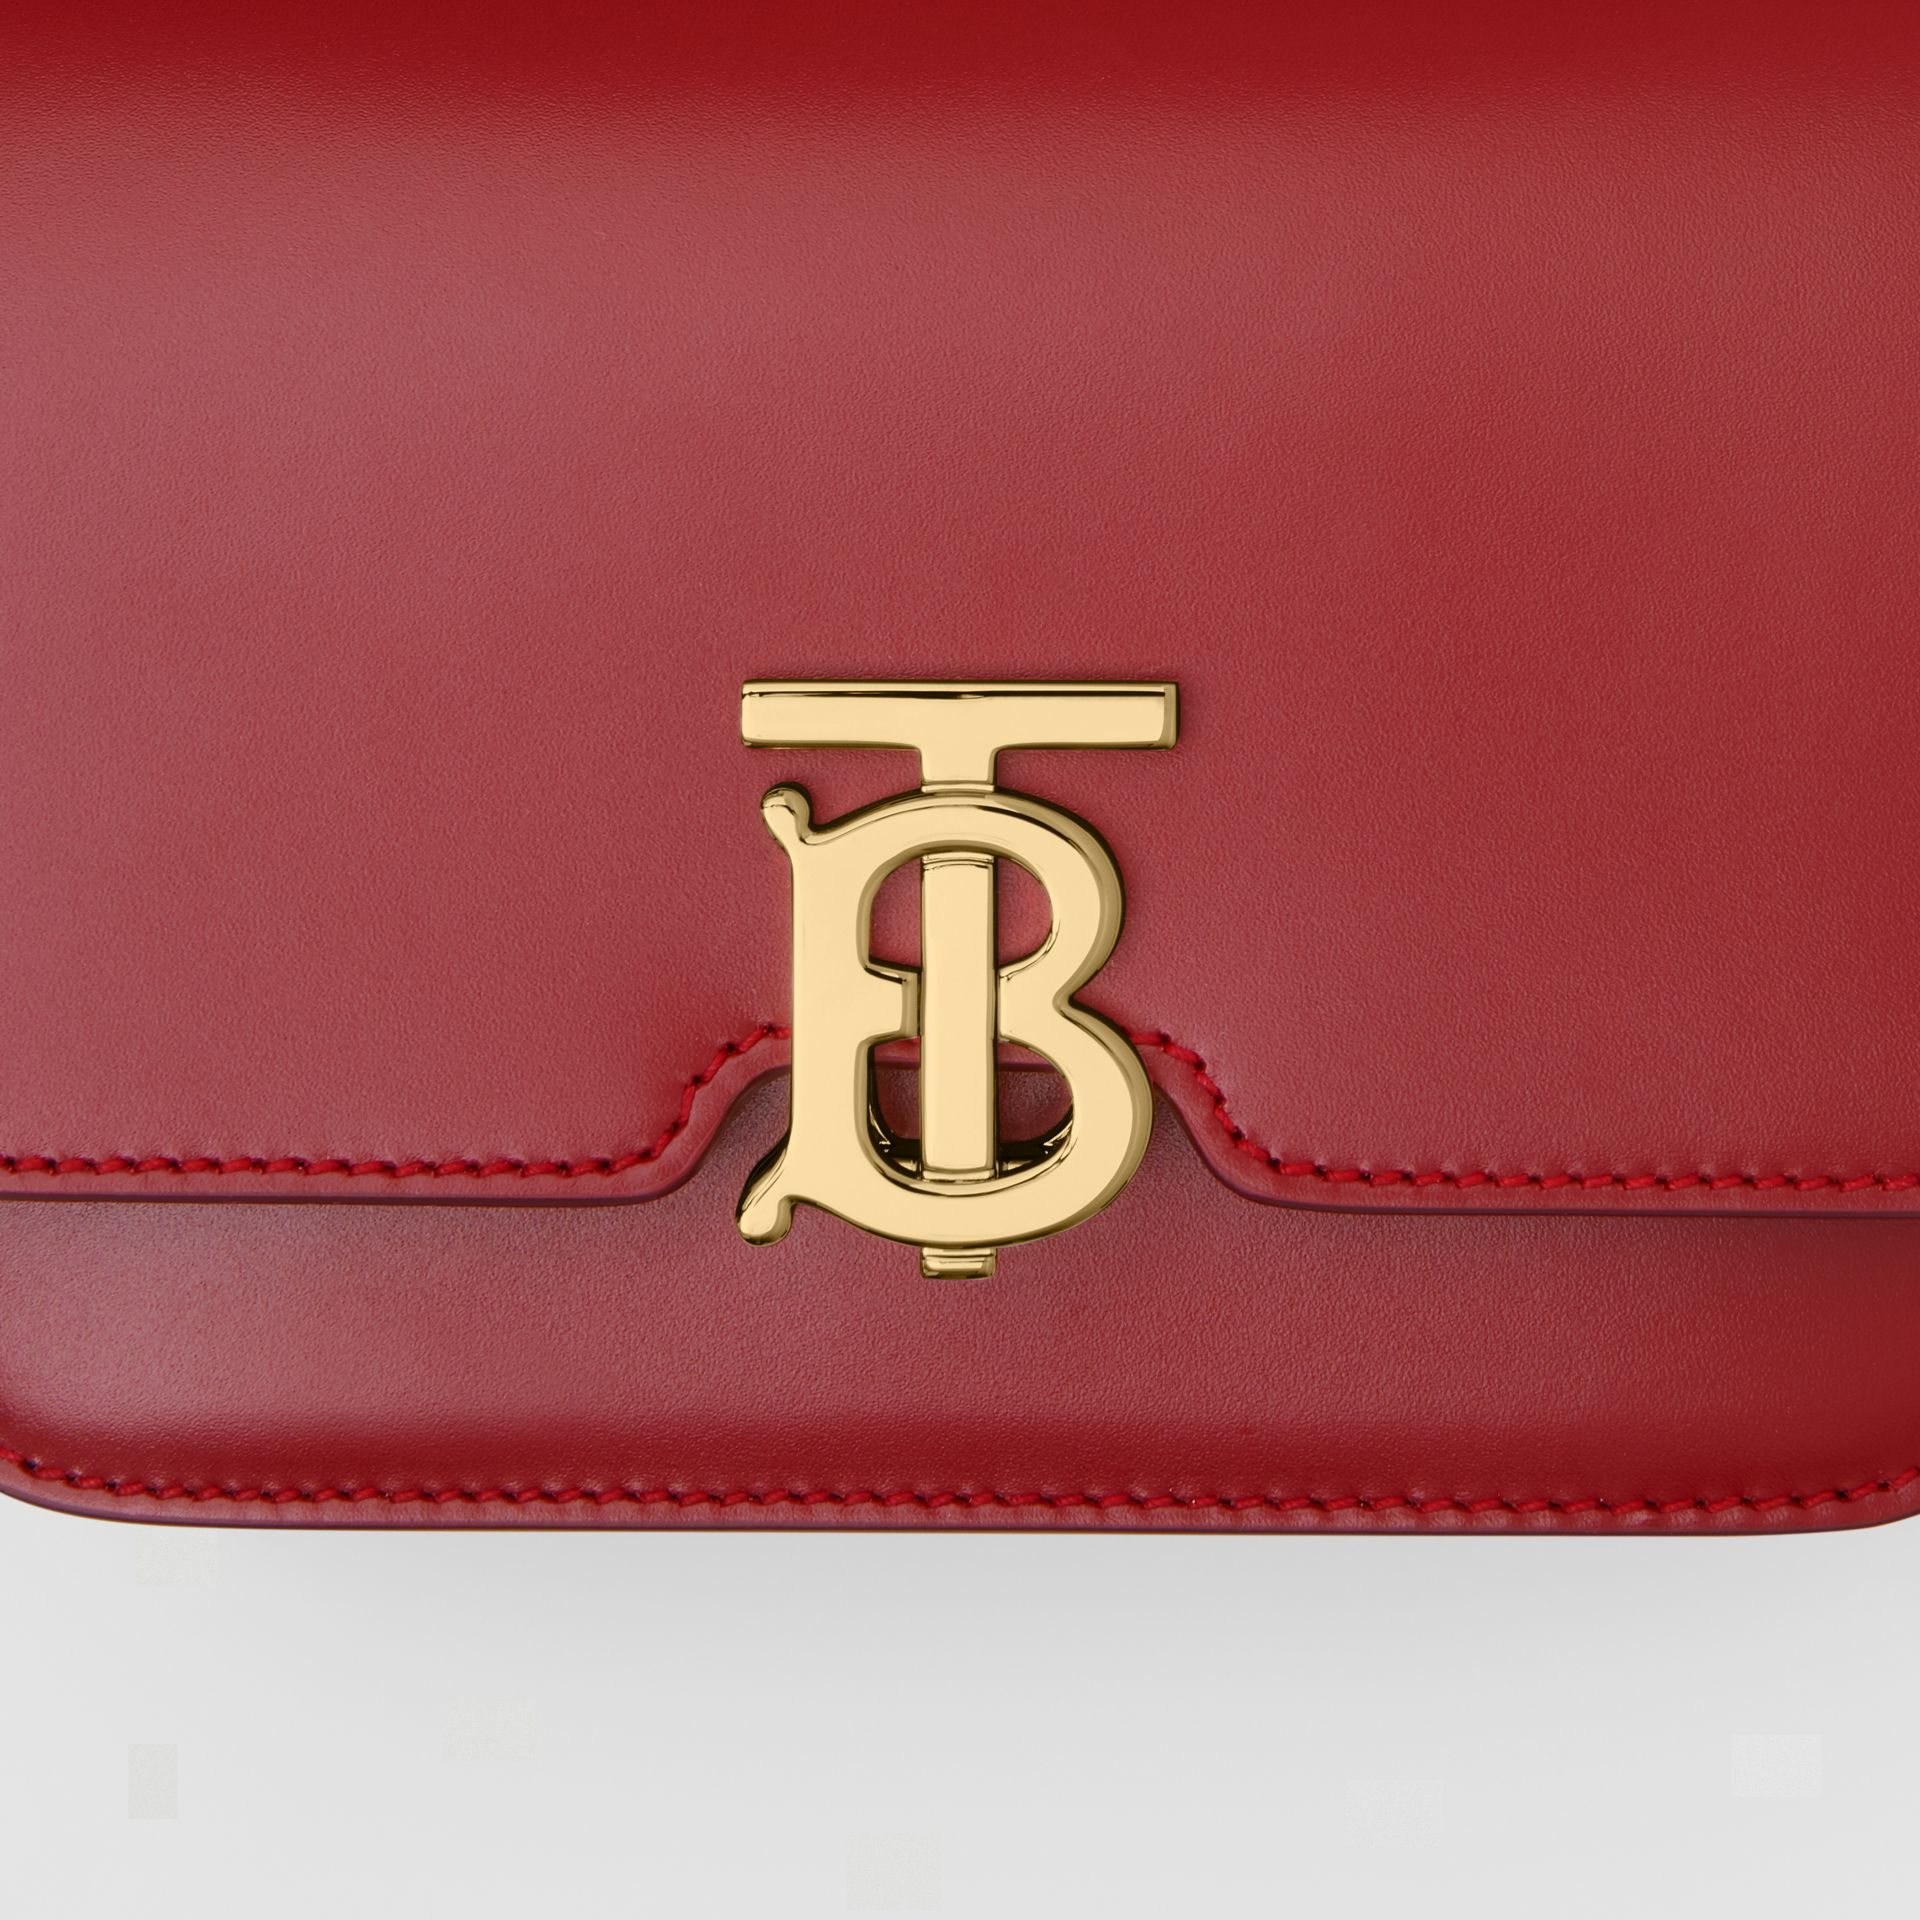 Mini Leather TB Bag in Dark Carmine - Women | Burberry - gallery image 1